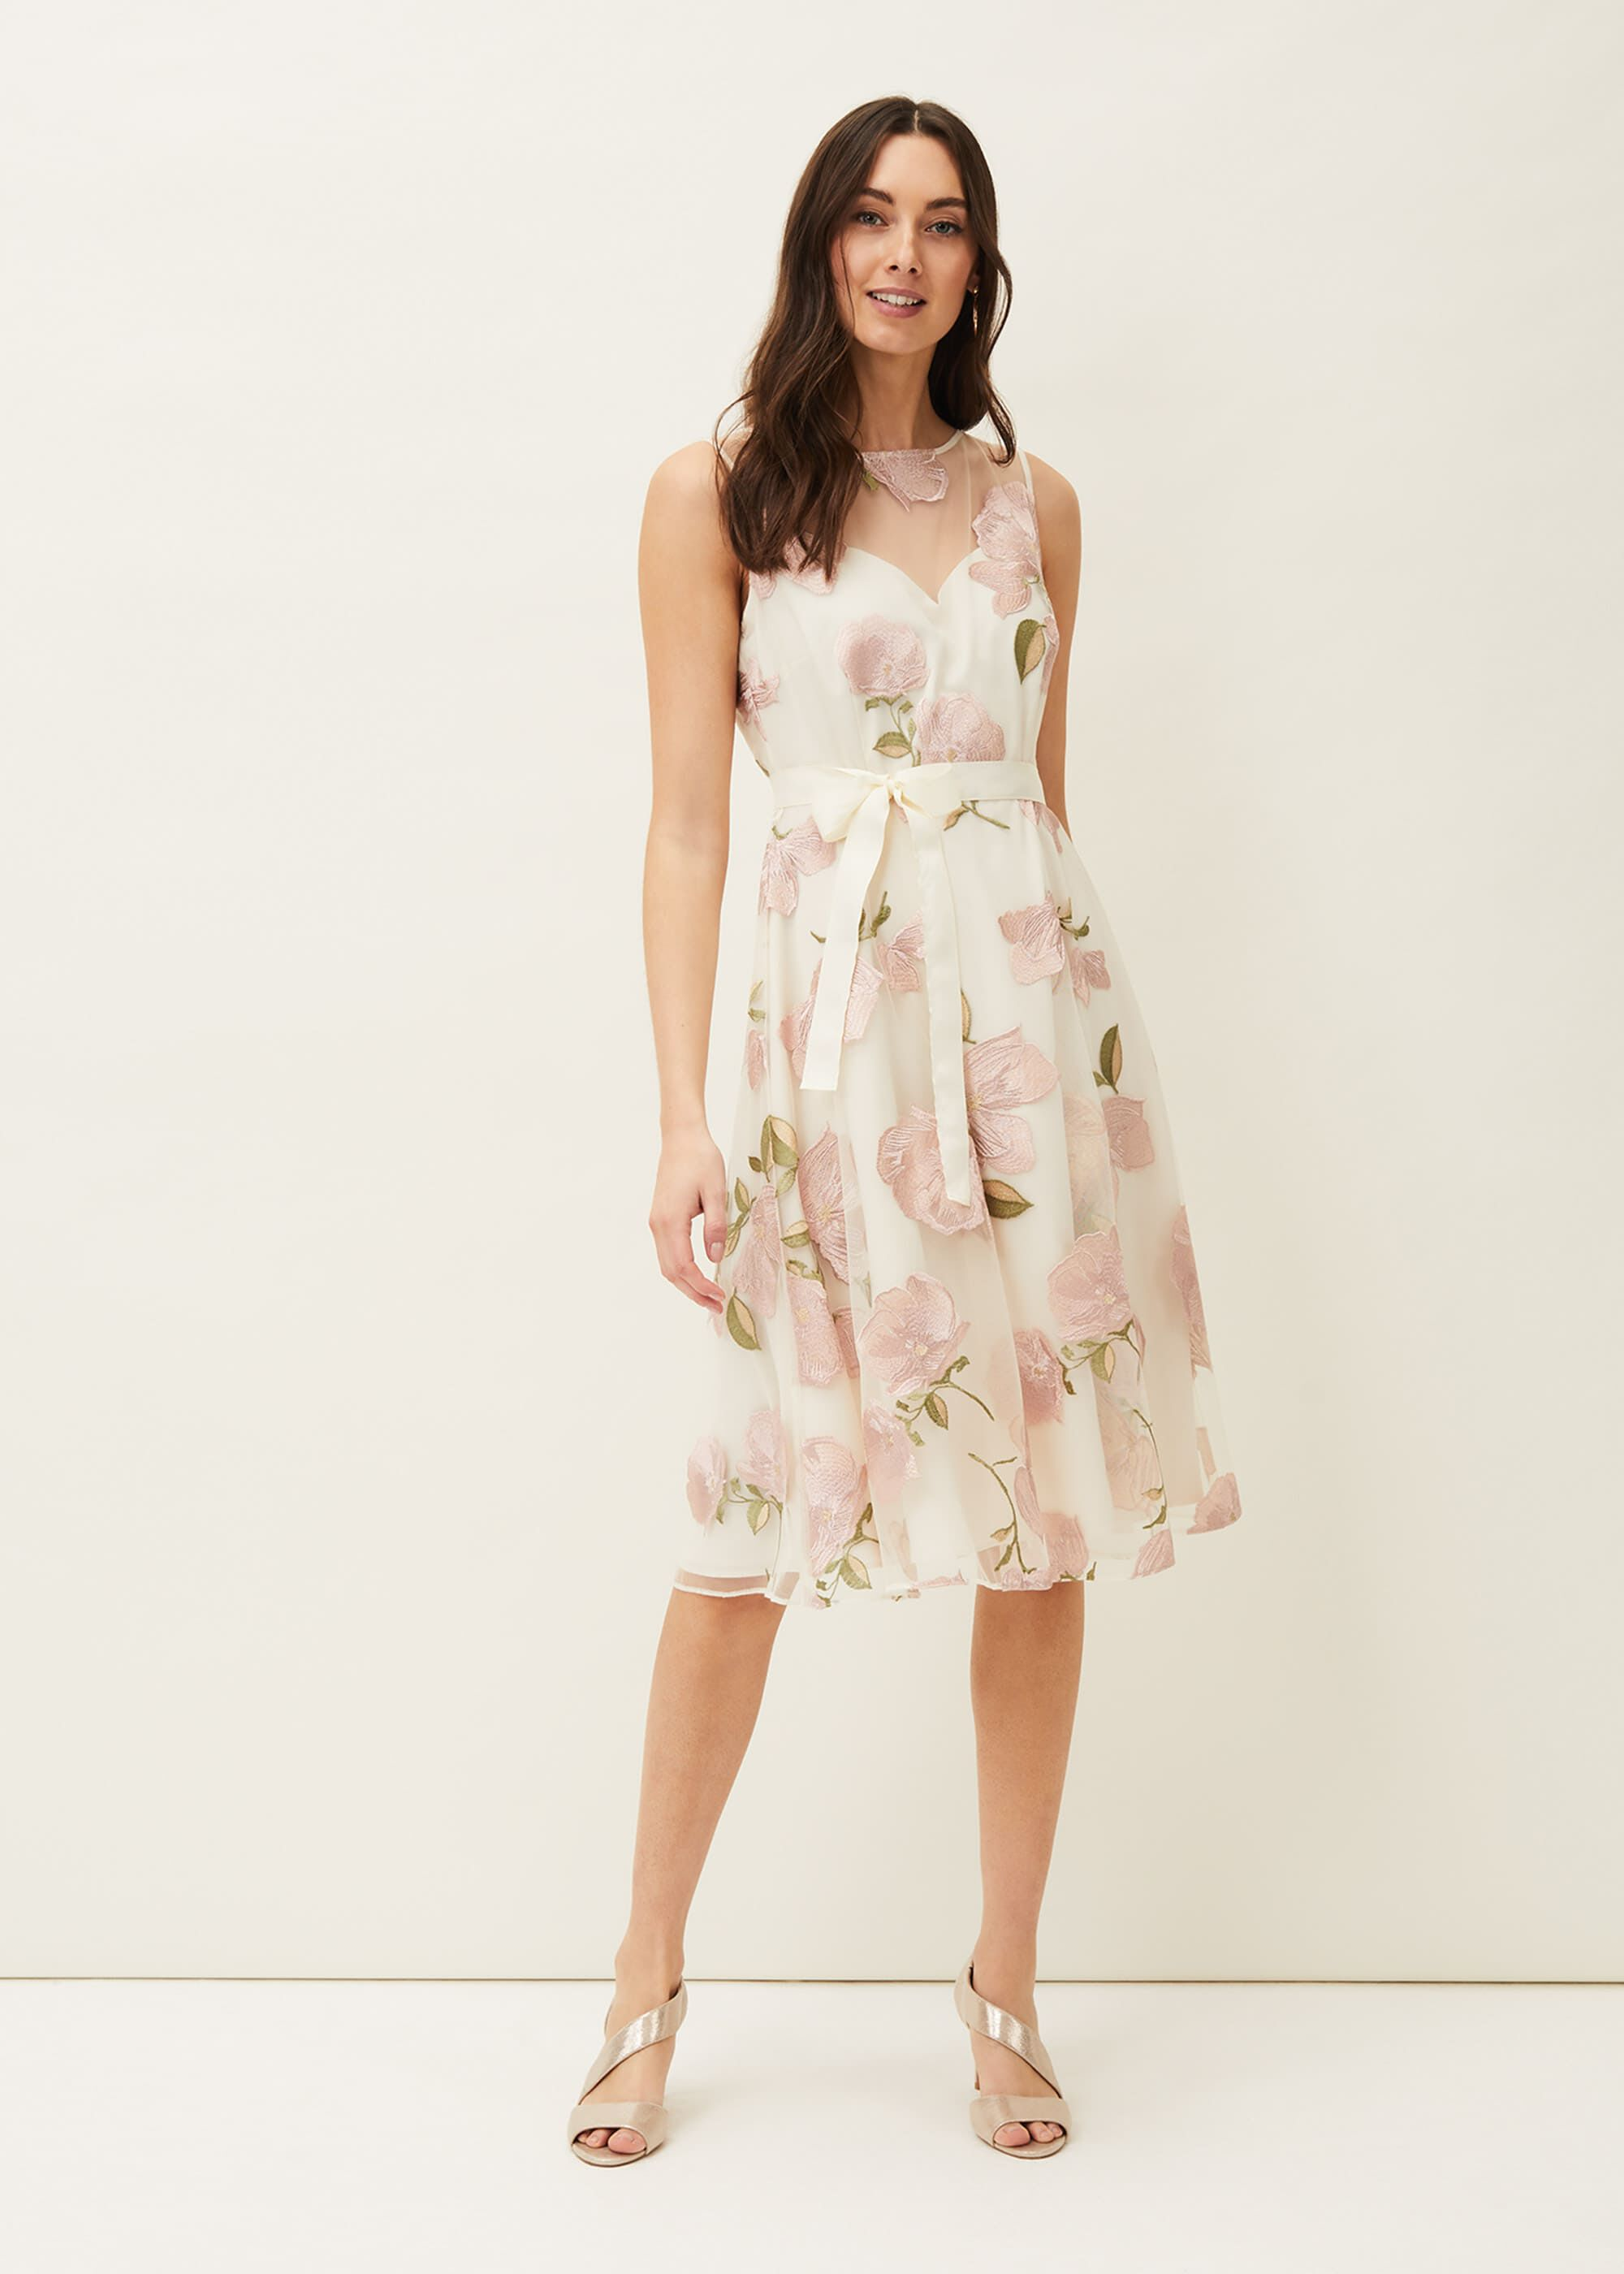 Phase Eight Charlotte Floral Embroidered Dress, Pink, Occasion Dress